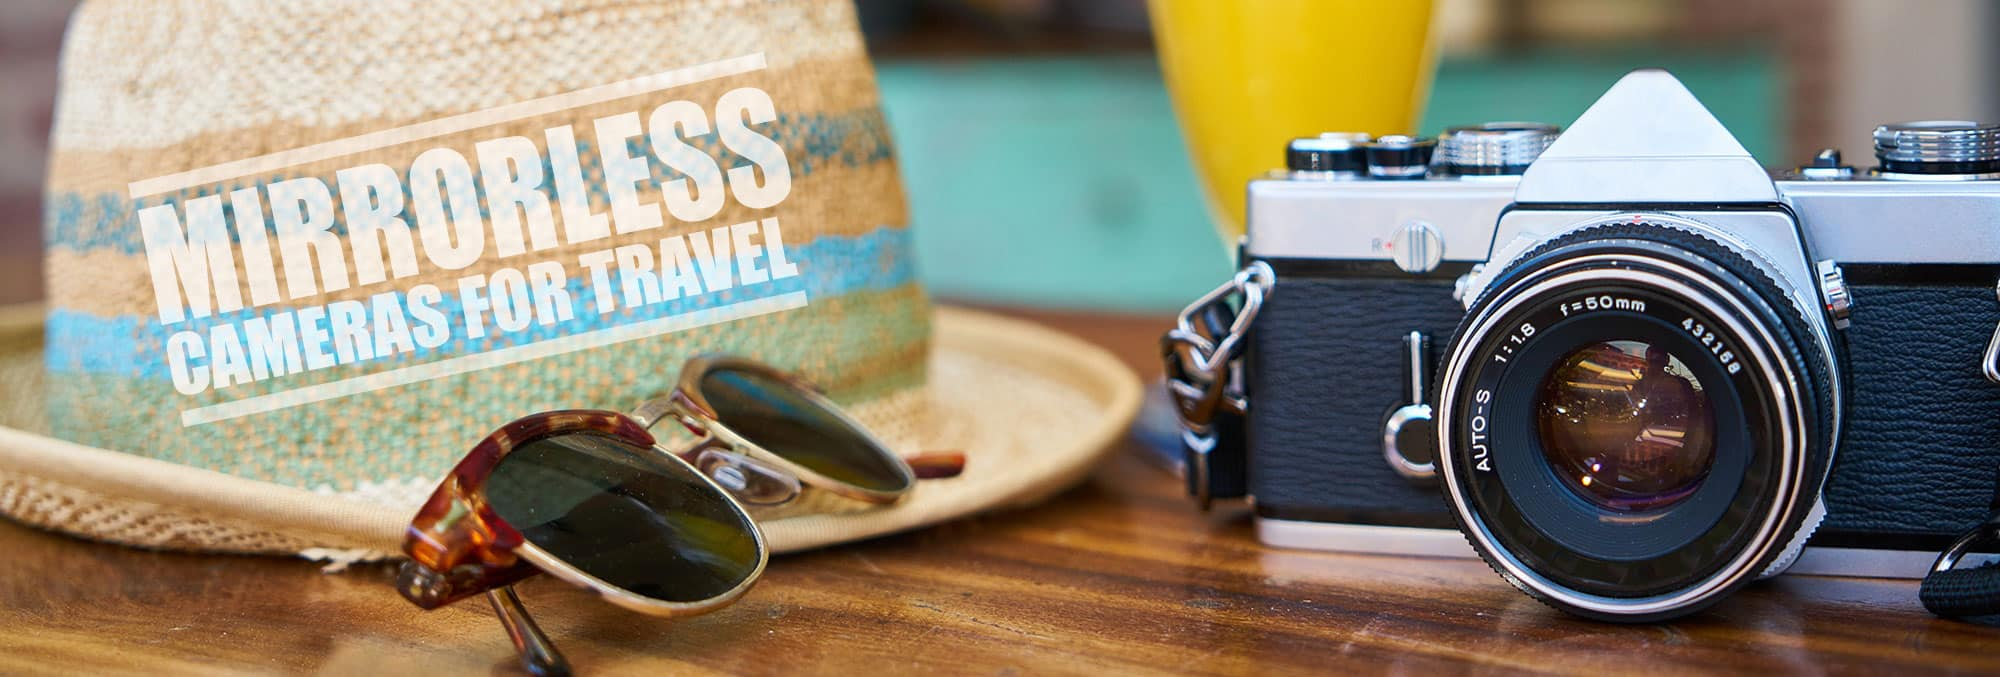 Mirrorless Camera Reviews   Best Mirrorless Camera for Travel: The Guide